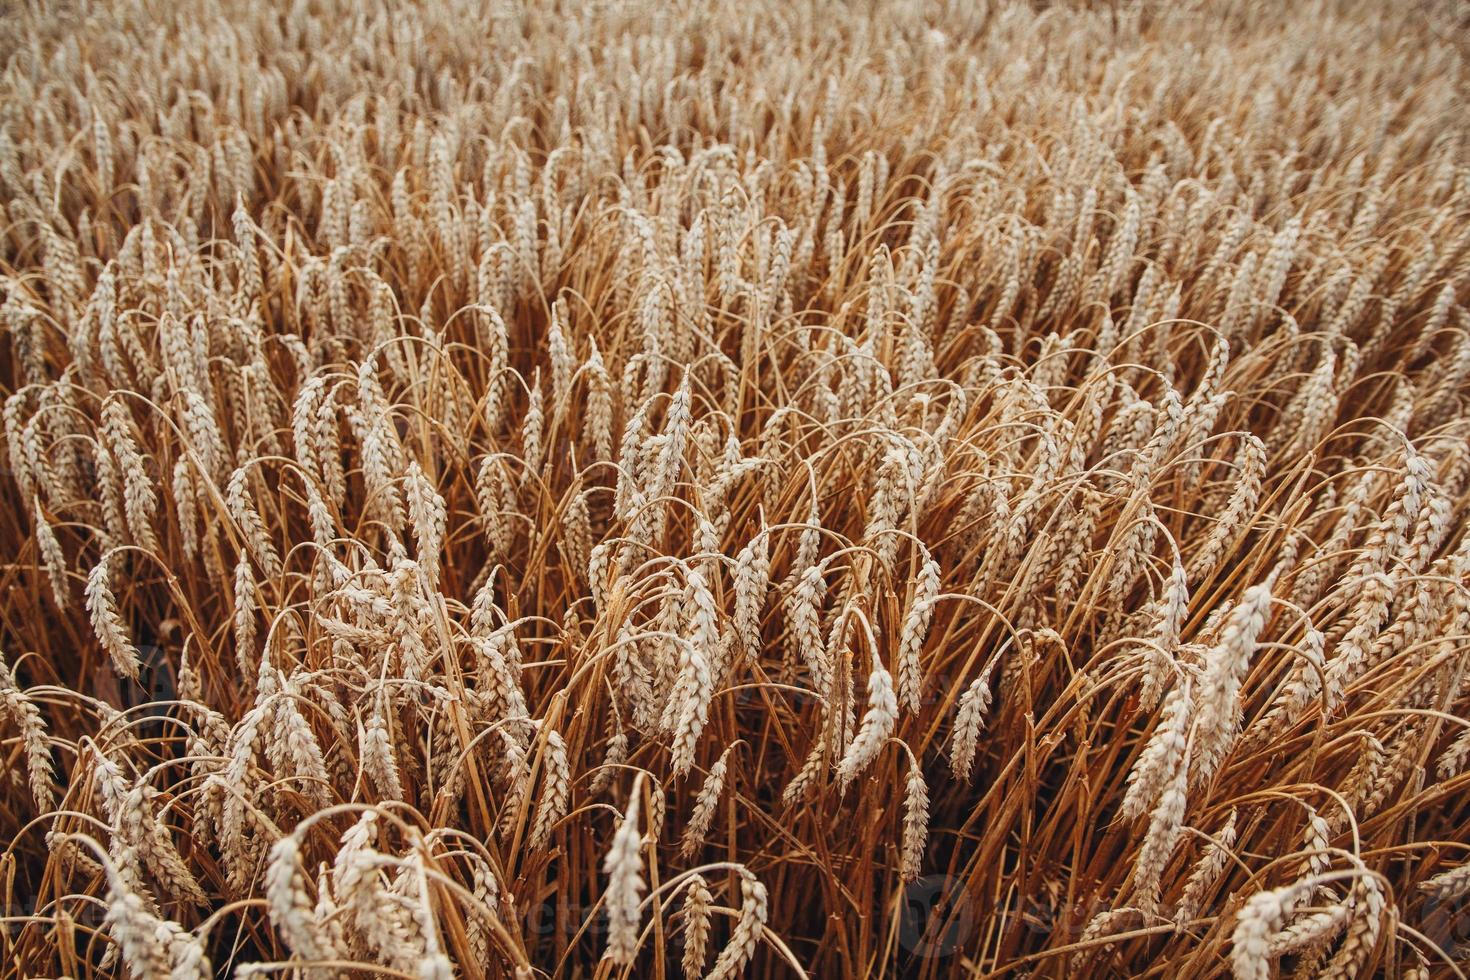 Background of ripening ears of wheat. Wheat field photo